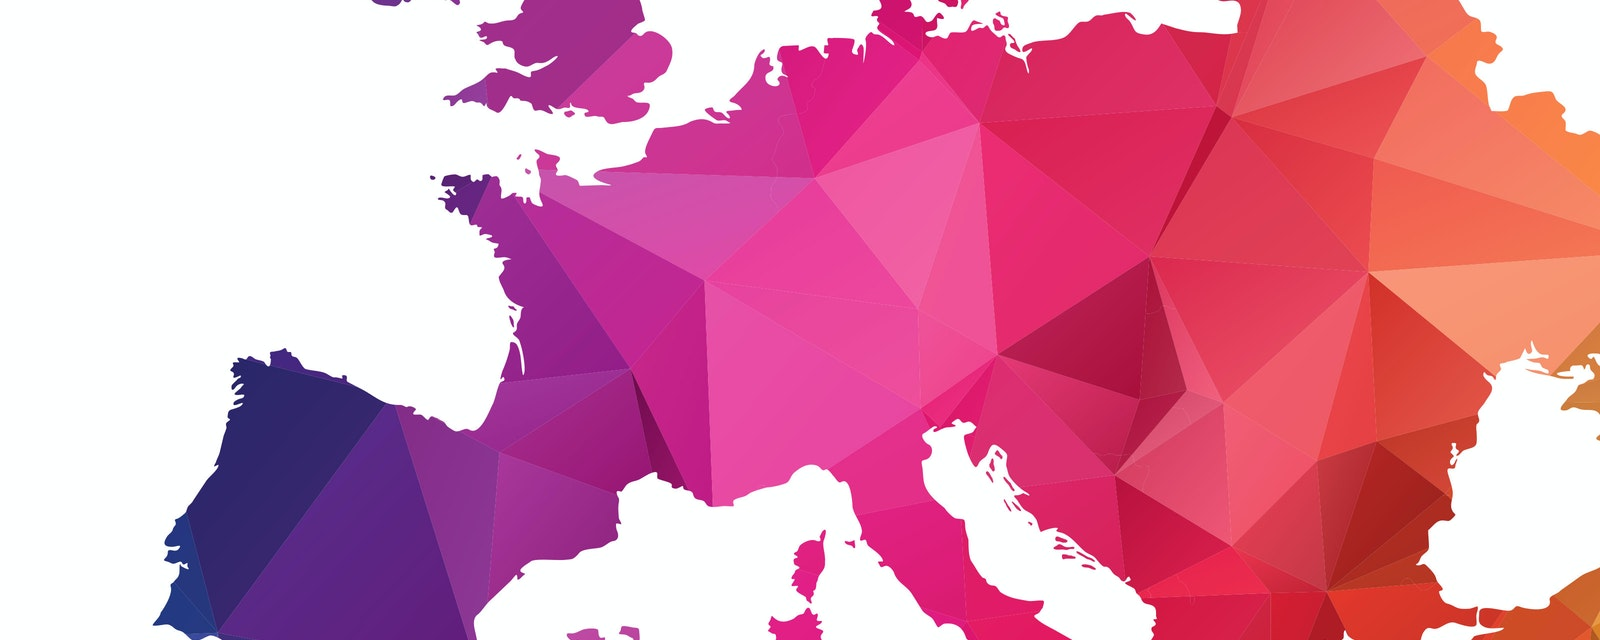 Abstract Polygon Map of Europe Continent